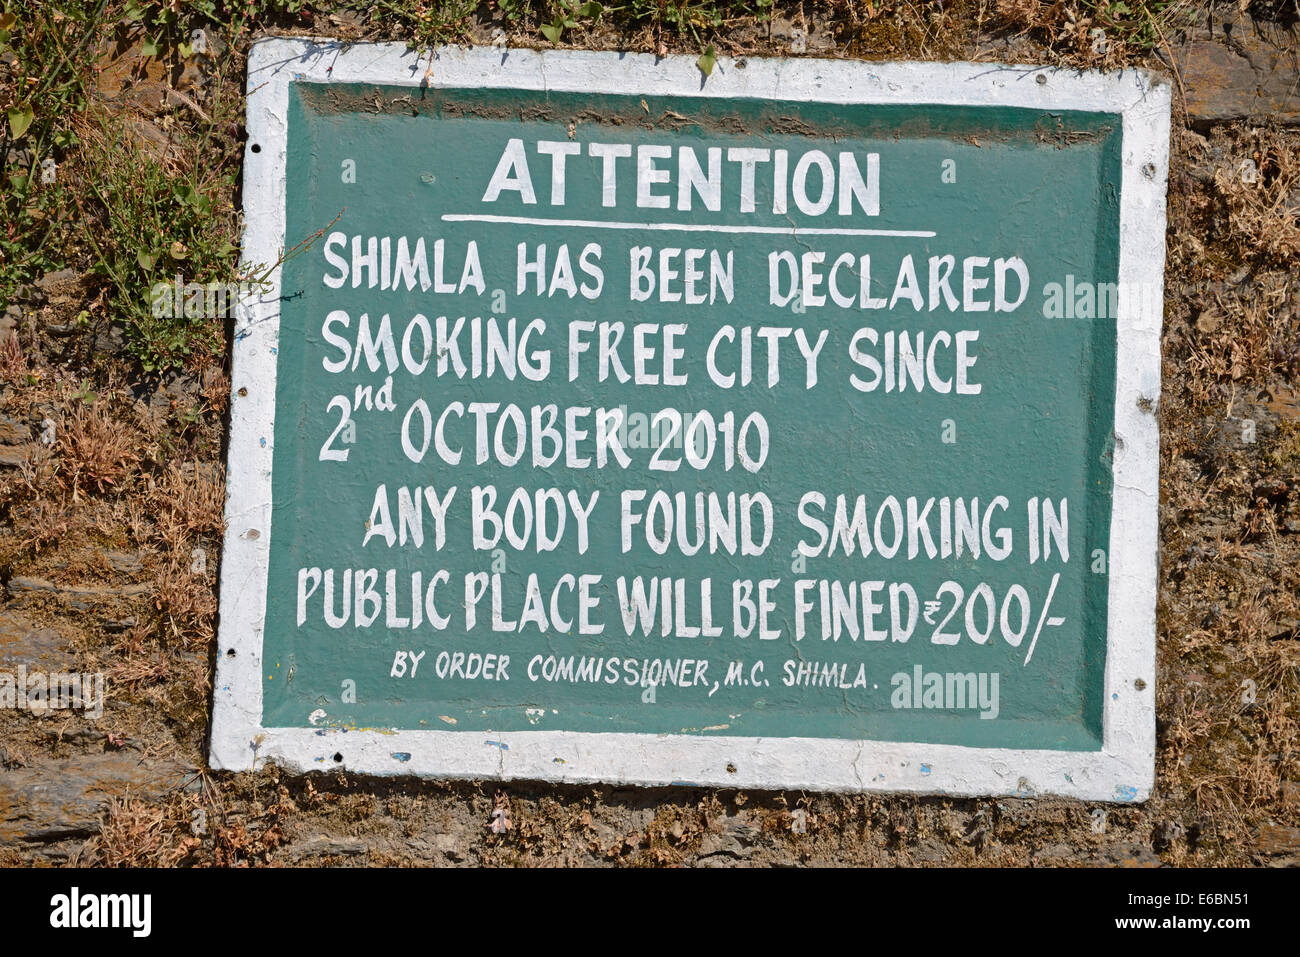 A no-smoking ban in Shimla, Himachal Pradesh,India - Stock Image